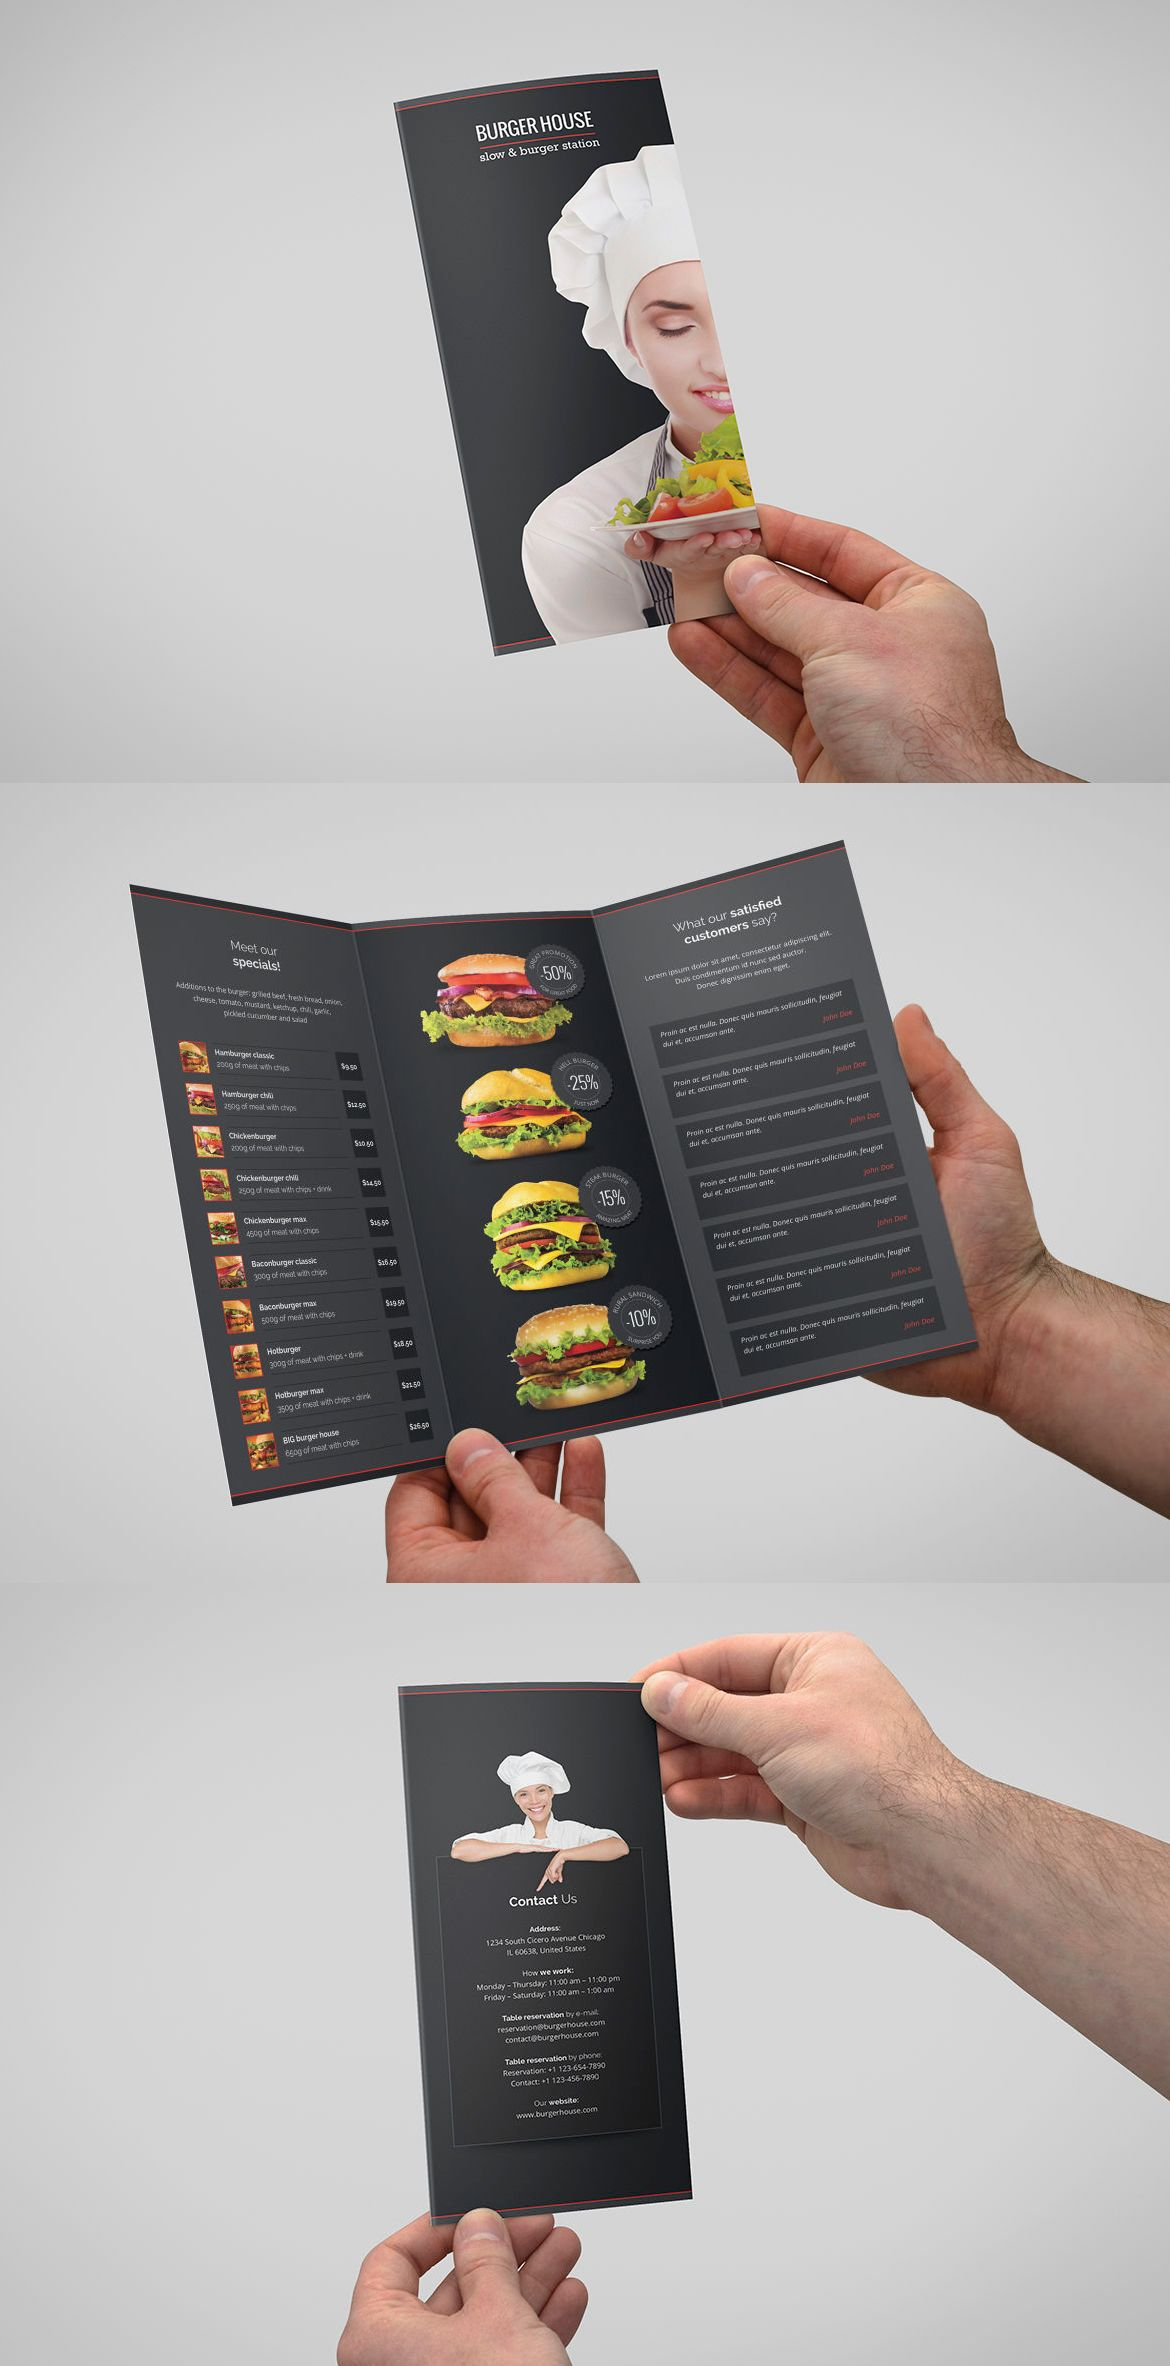 bar bistro burger menu and restaurant tri fold brochure burger house brochure tri fold graphic templates by artbart subscribe to envato elements for unlimited graphic templates s for a single